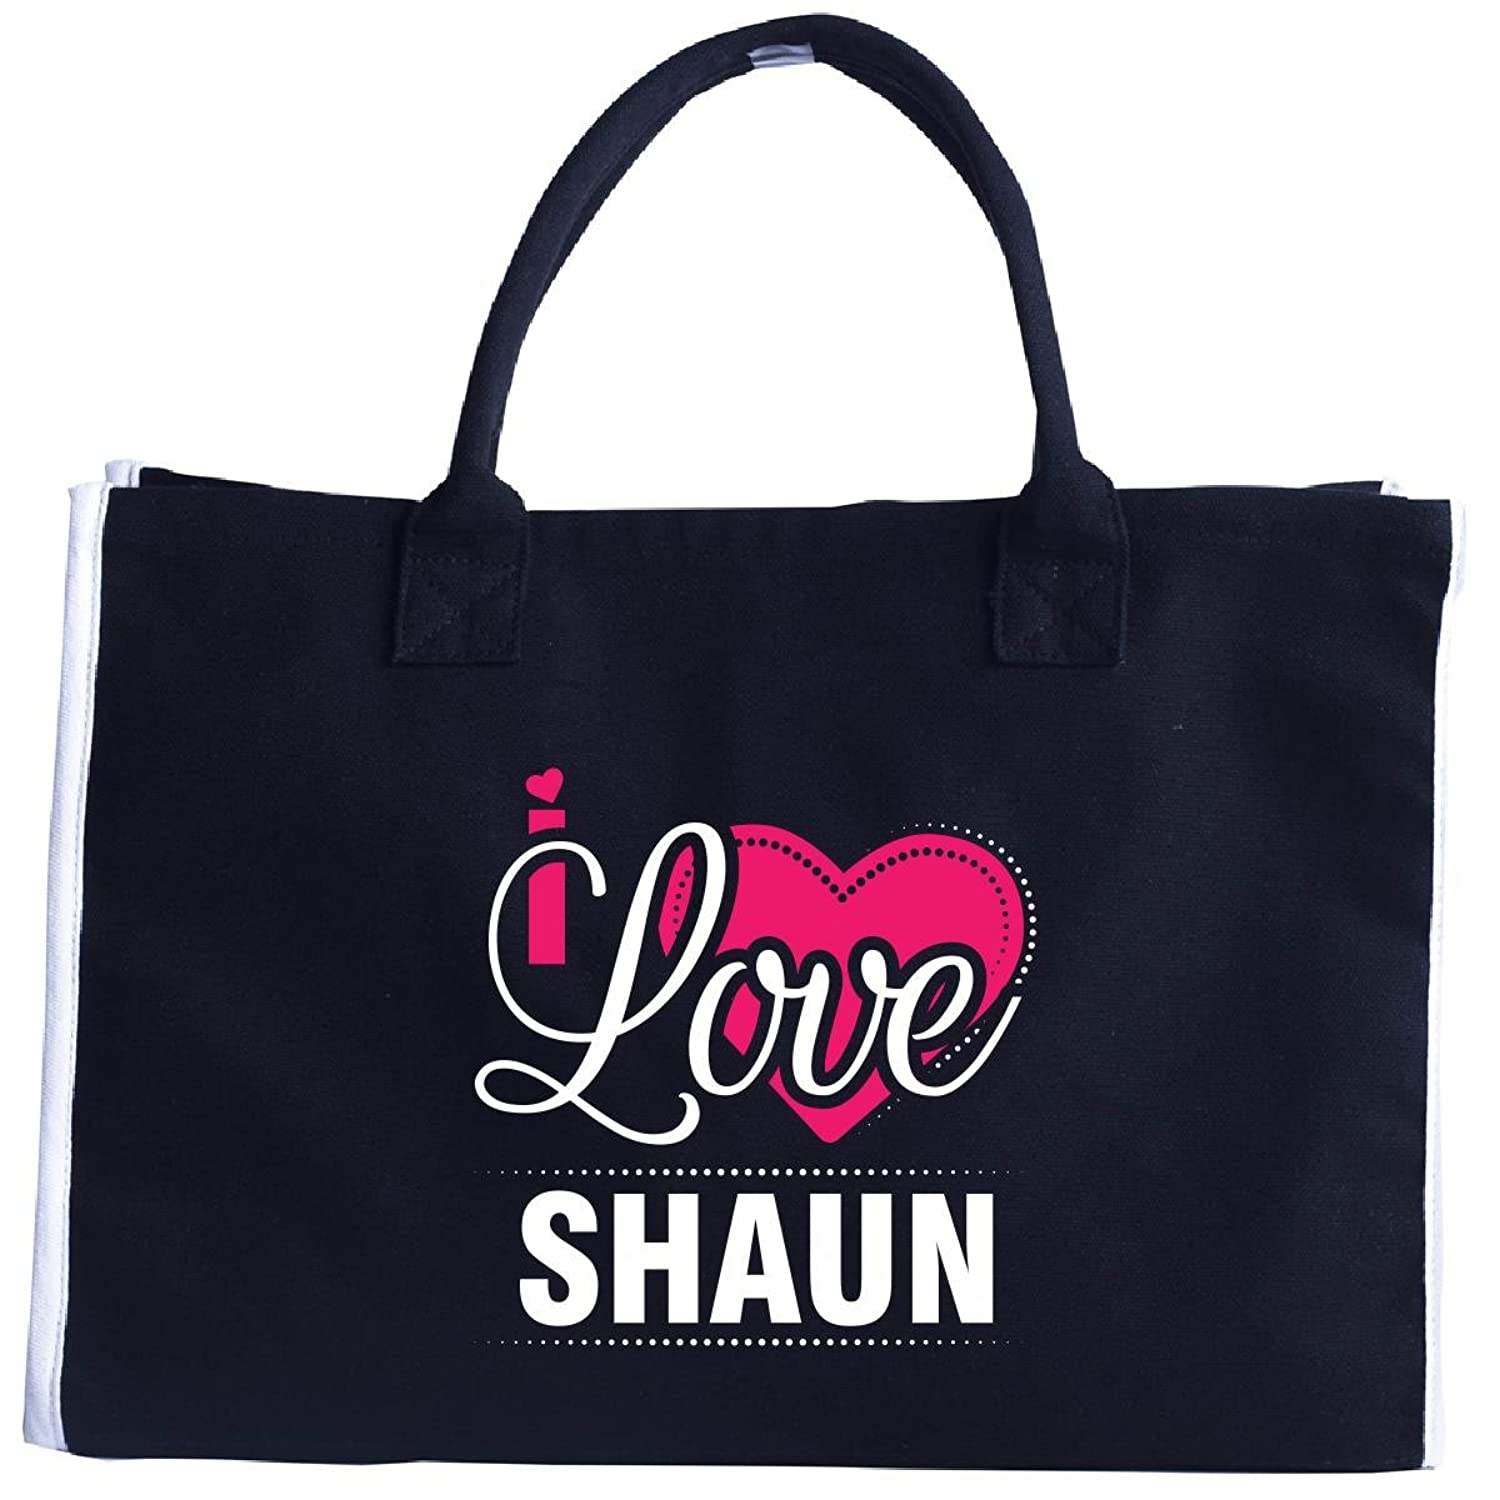 I Love Shaun - Cool Gift For Shaun From Girlfriend - Tote Bag